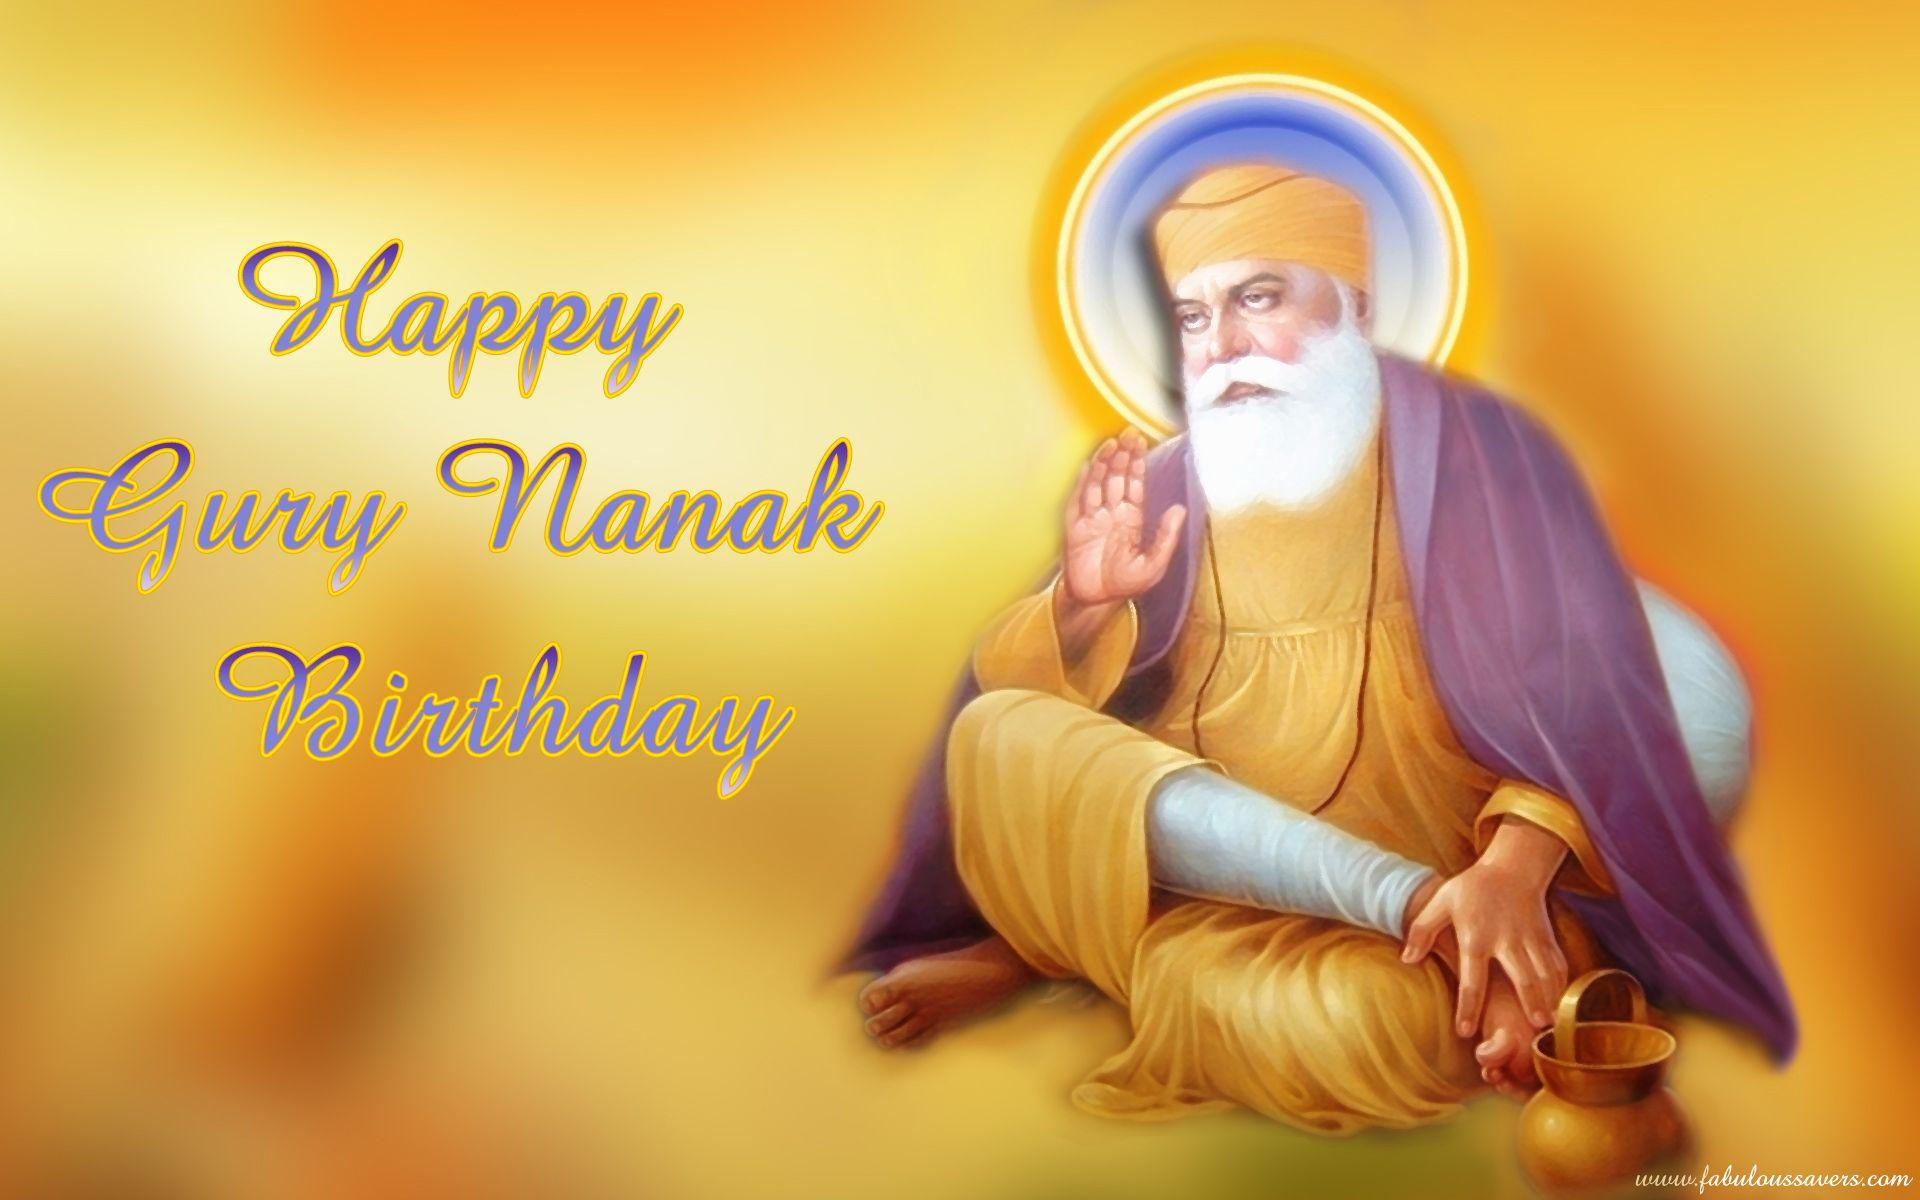 May you find #happiness and peace with the blessings of Guru Nanak ...